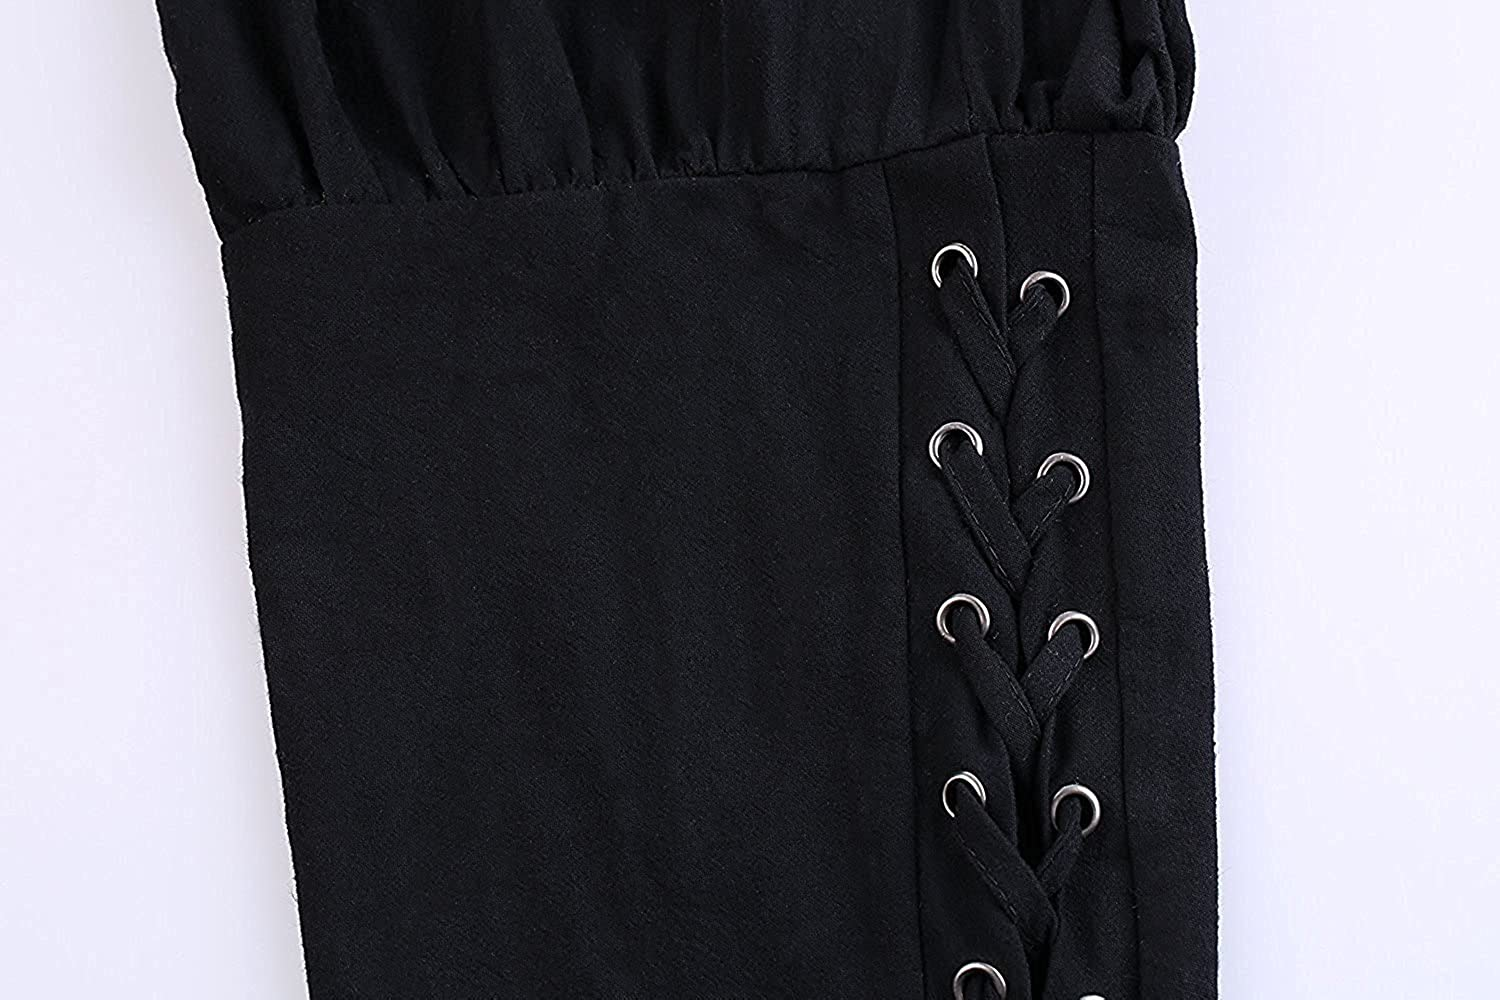 Mens Medieval Viking Pirate Pants Renaissance Ankle Banded Cosplay Costume Gothic Trousers